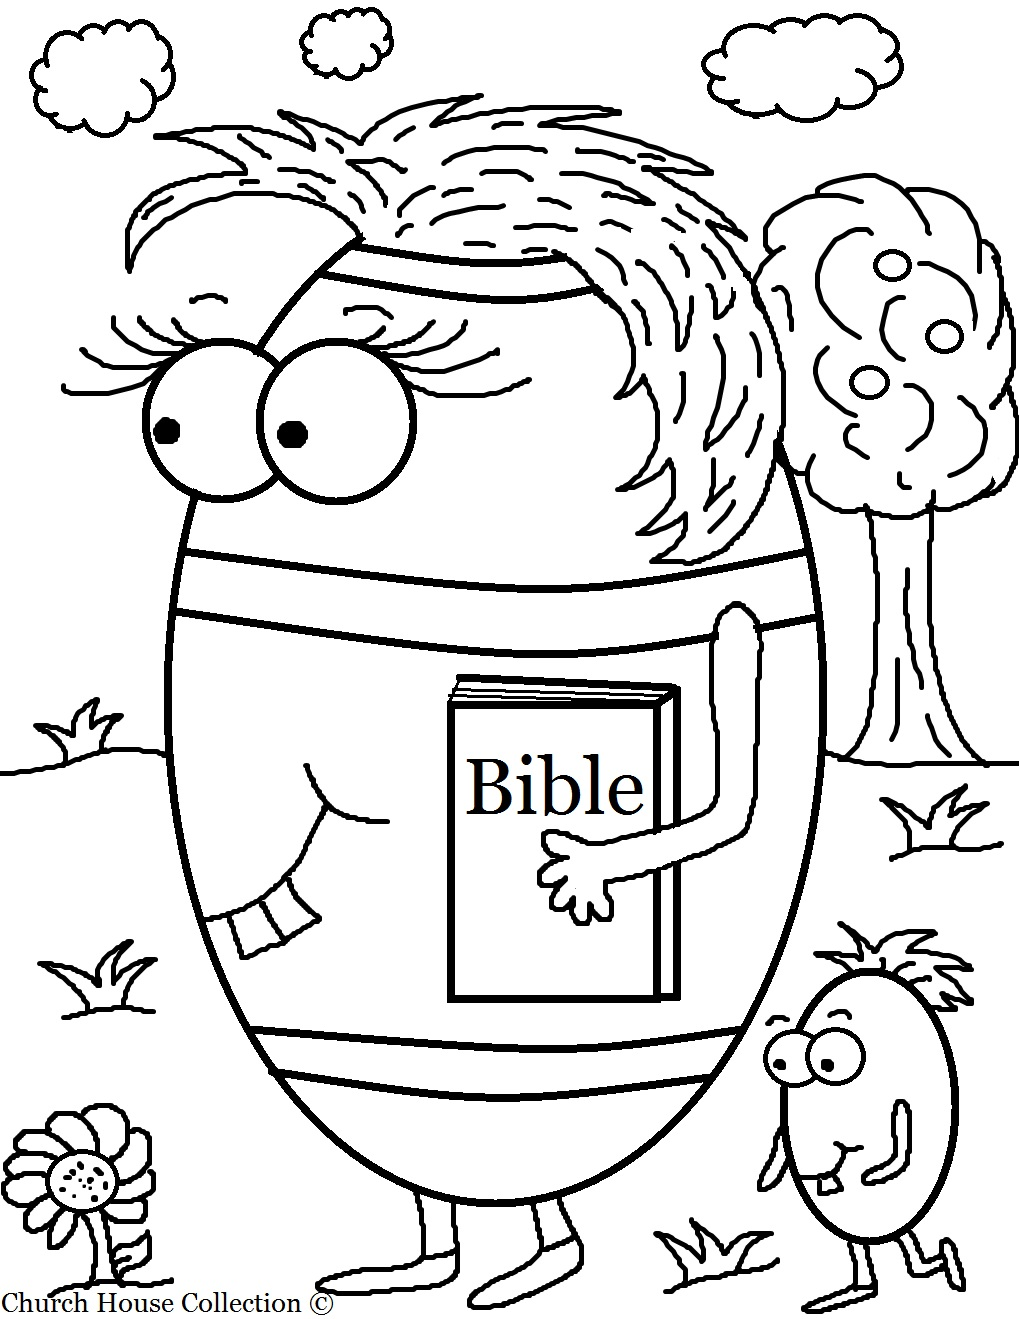 Bible Printables Bible Coloring Pages - bible coloring pages free printable